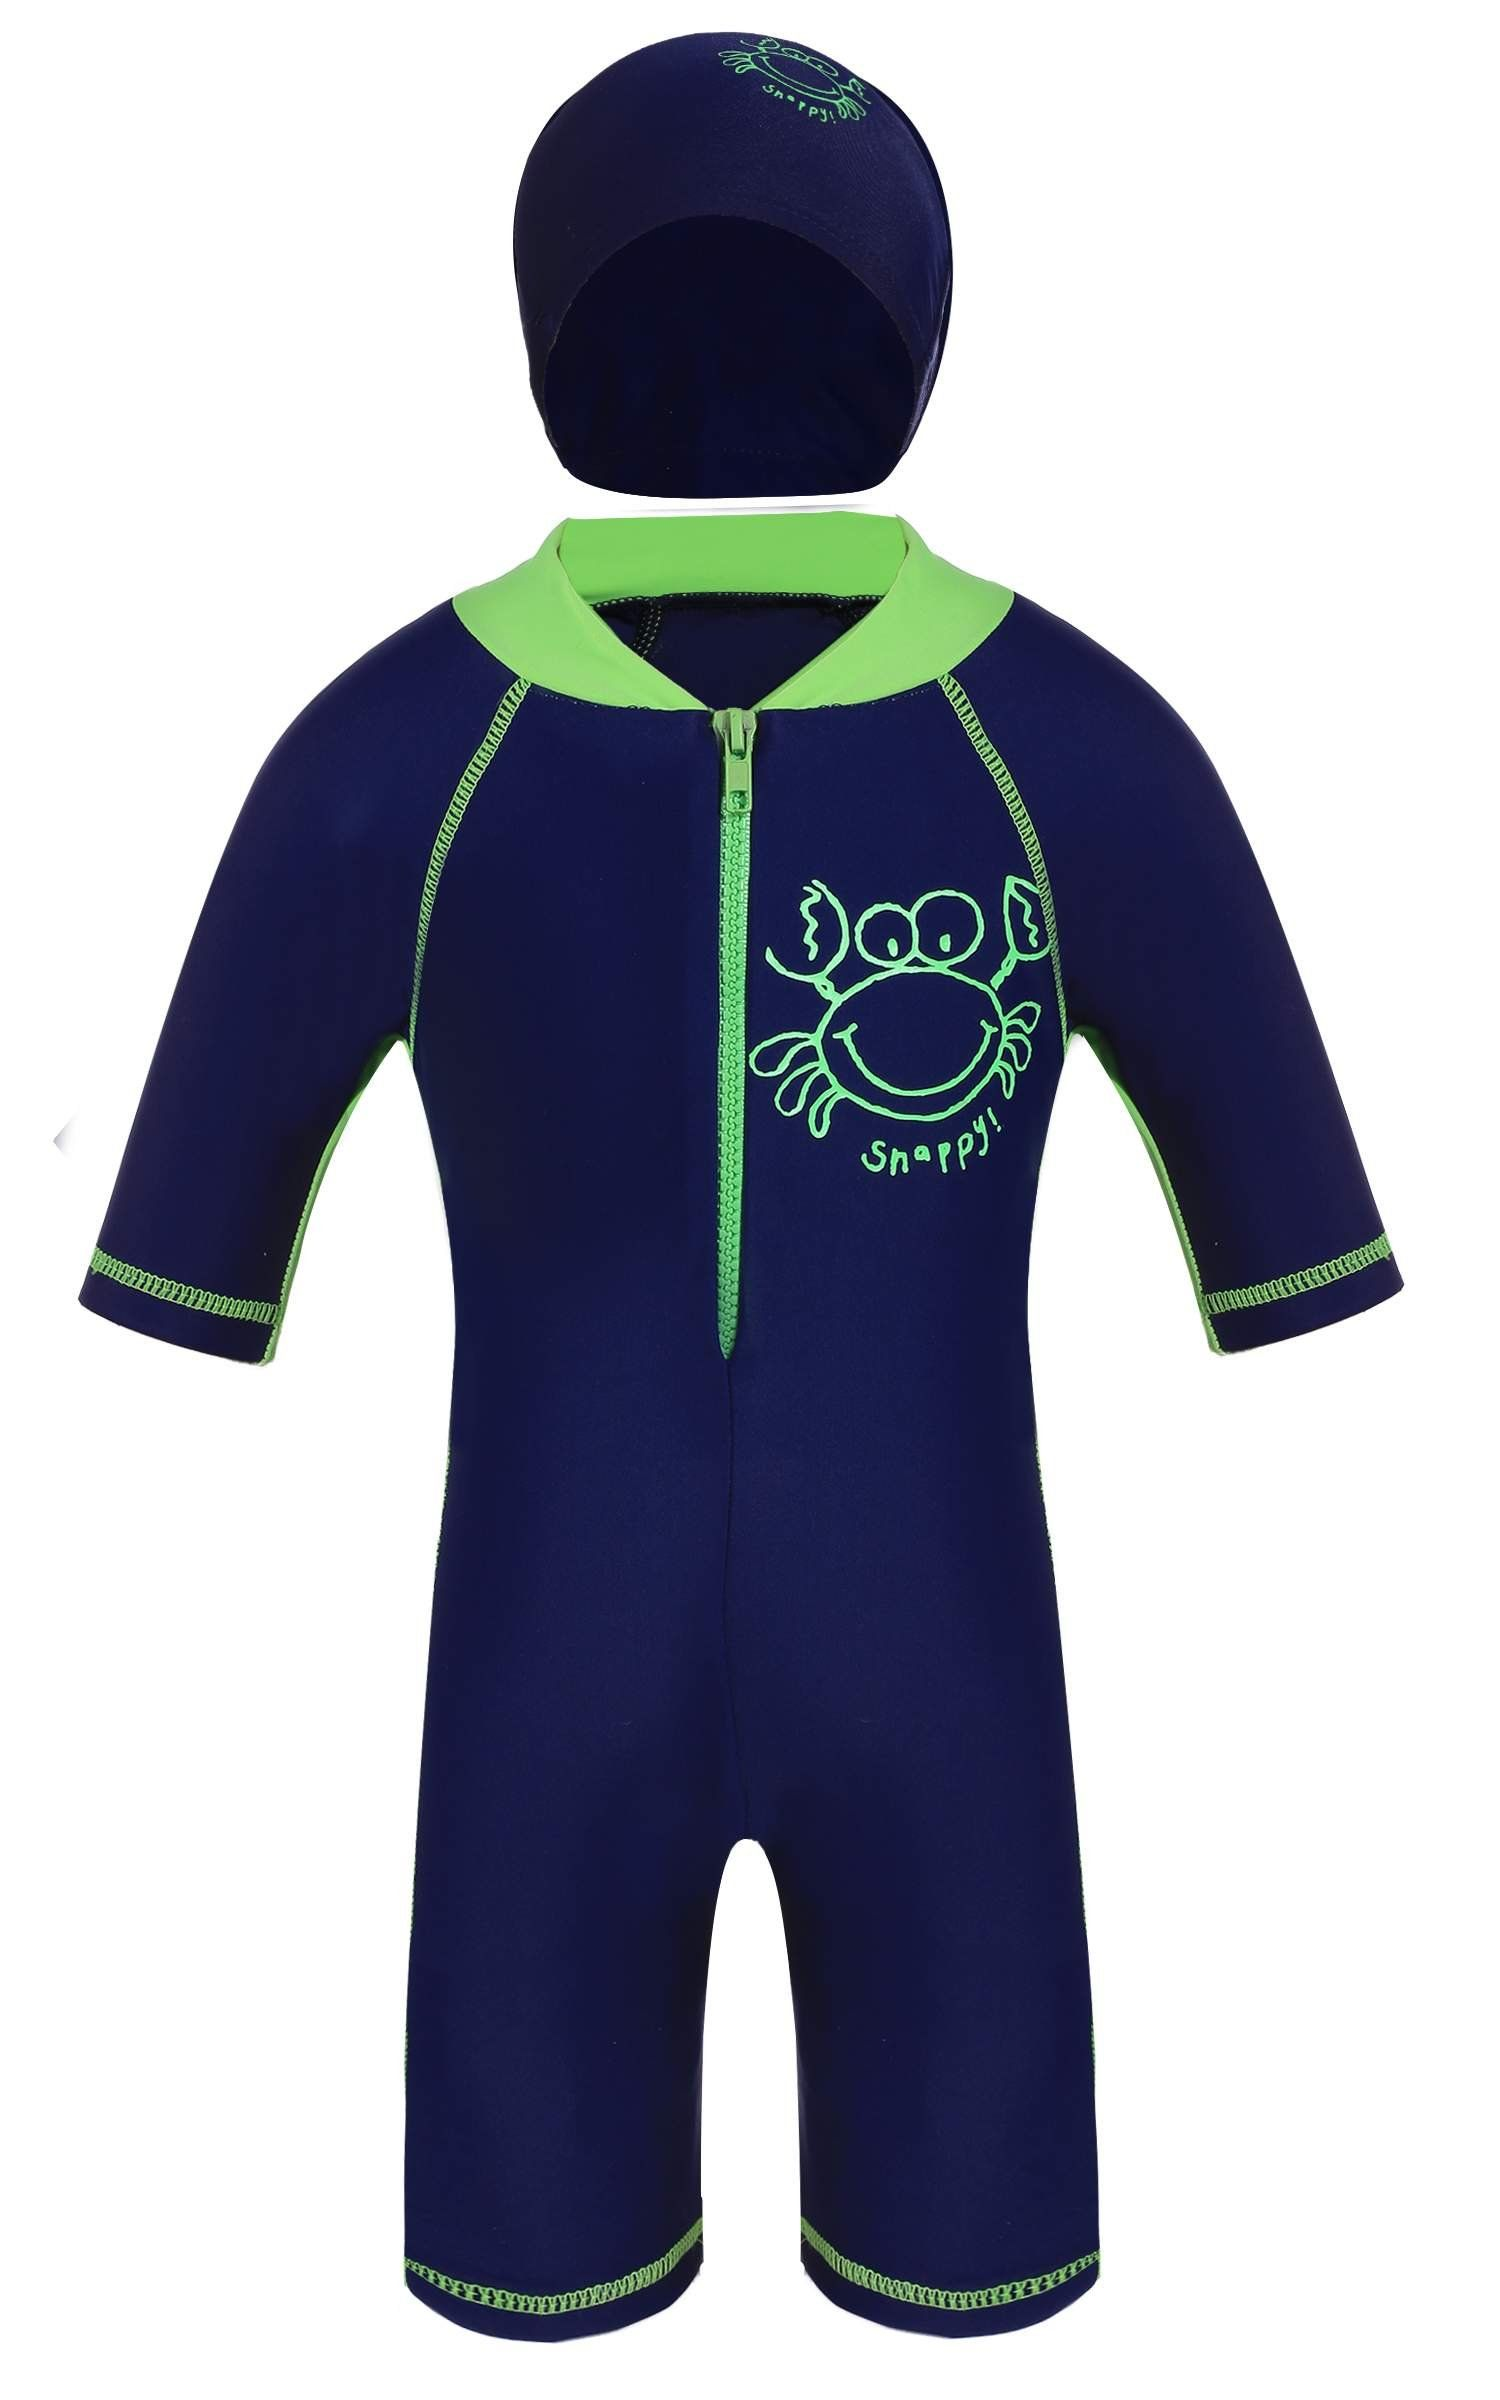 bf10762f2f10 Arshiner Kids Boys Wear Surfing Suits Sun Protection Beach Swimsuit  Swimwear * Read more reviews of the product by visiting the link on the  image.